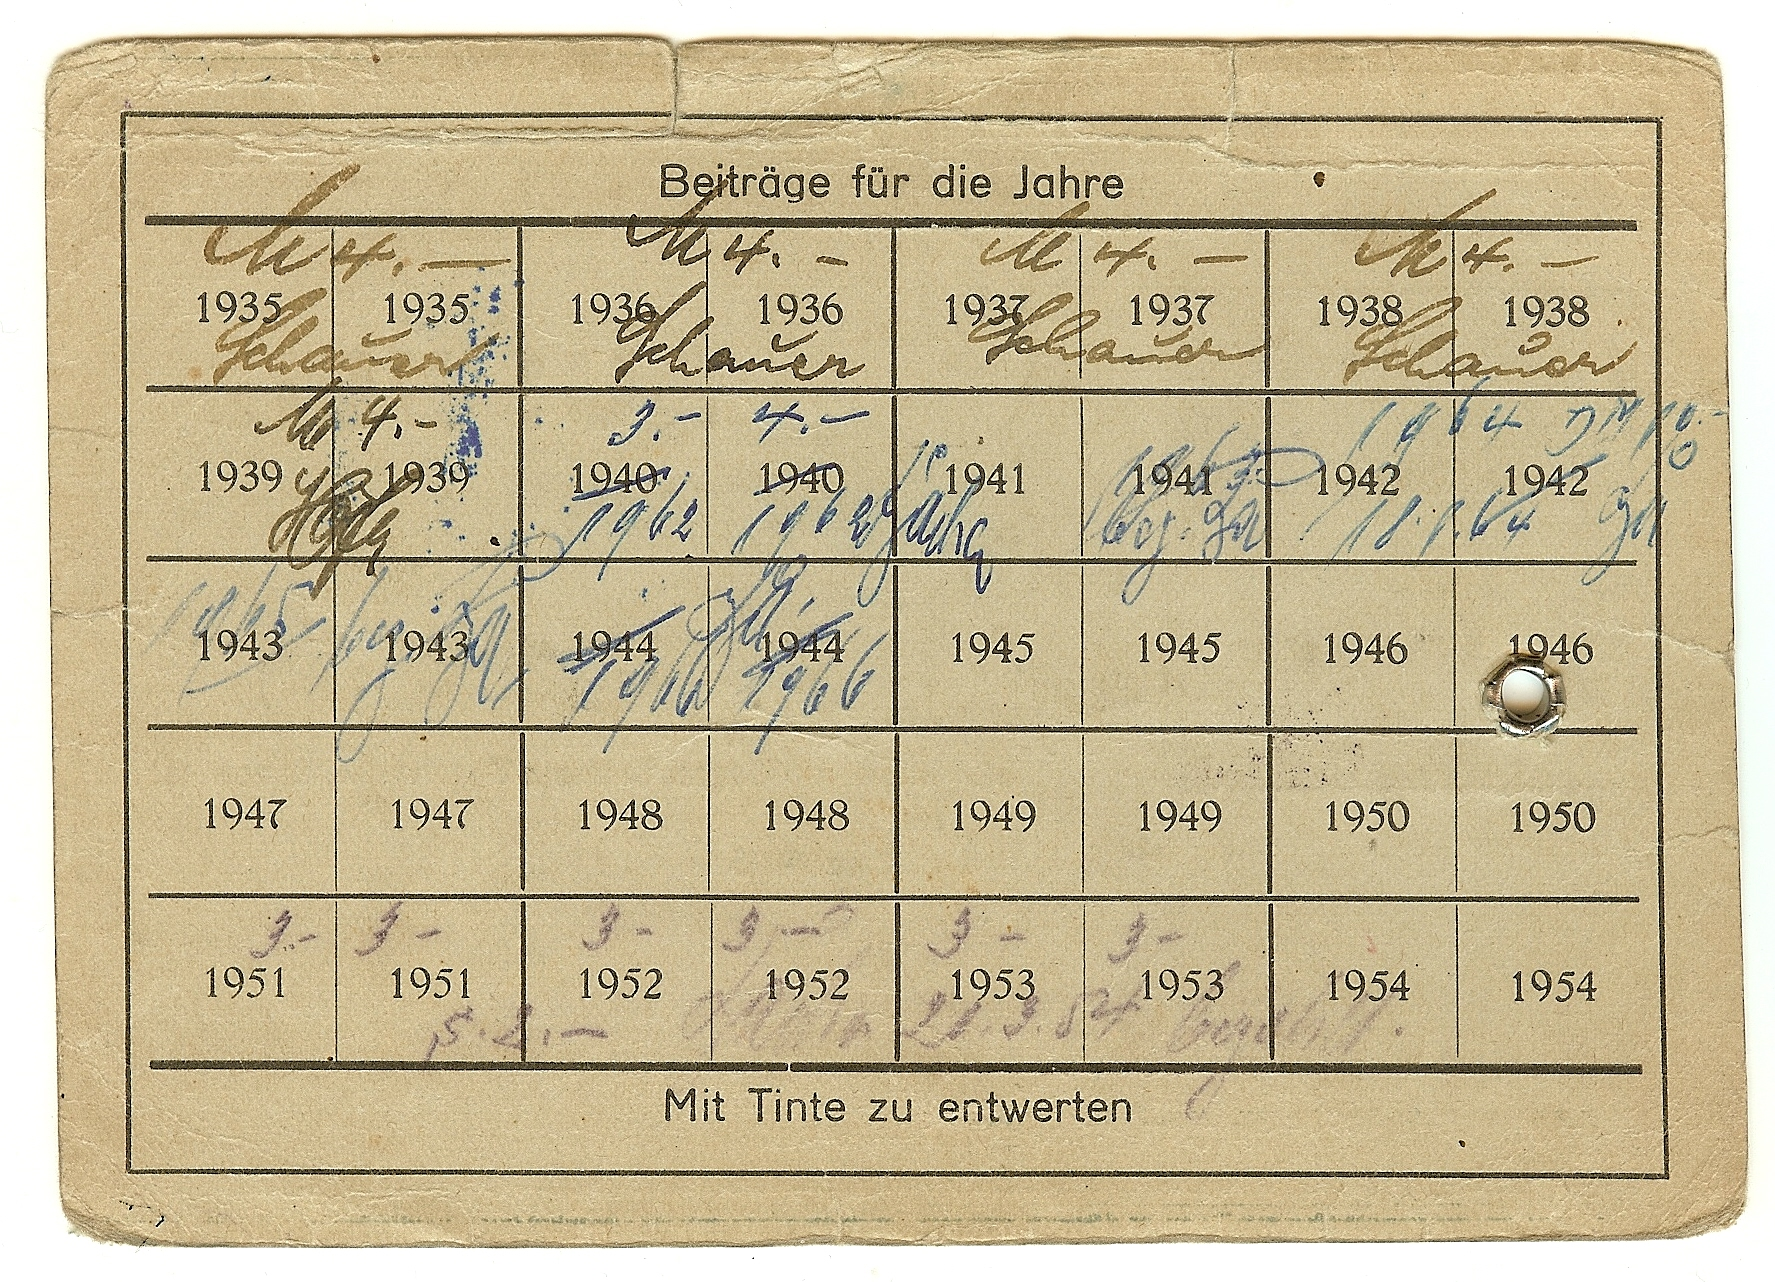 Figure 2-Reverse of the Orden der Bayerischen Tapferkeitsmedaille Ausweis showing that Adolf Fichtner paid his membership dues through 1953. Image from author's archive.